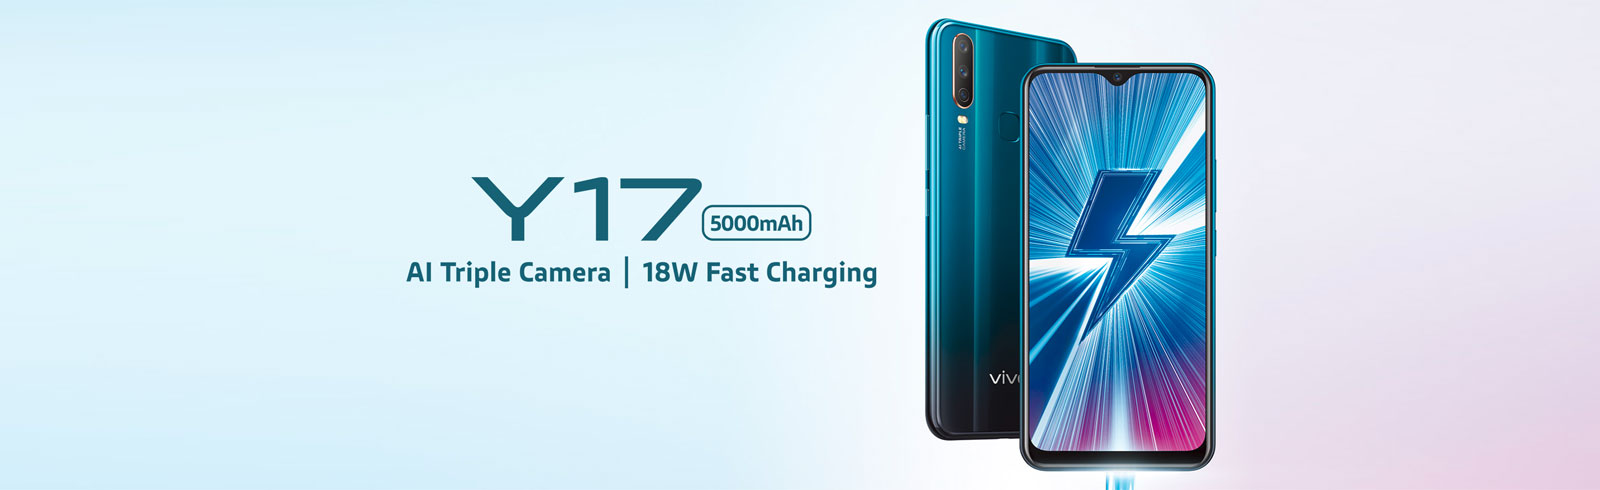 Vivo Y17 goes official with a 5000 mAh battery, triple cameras